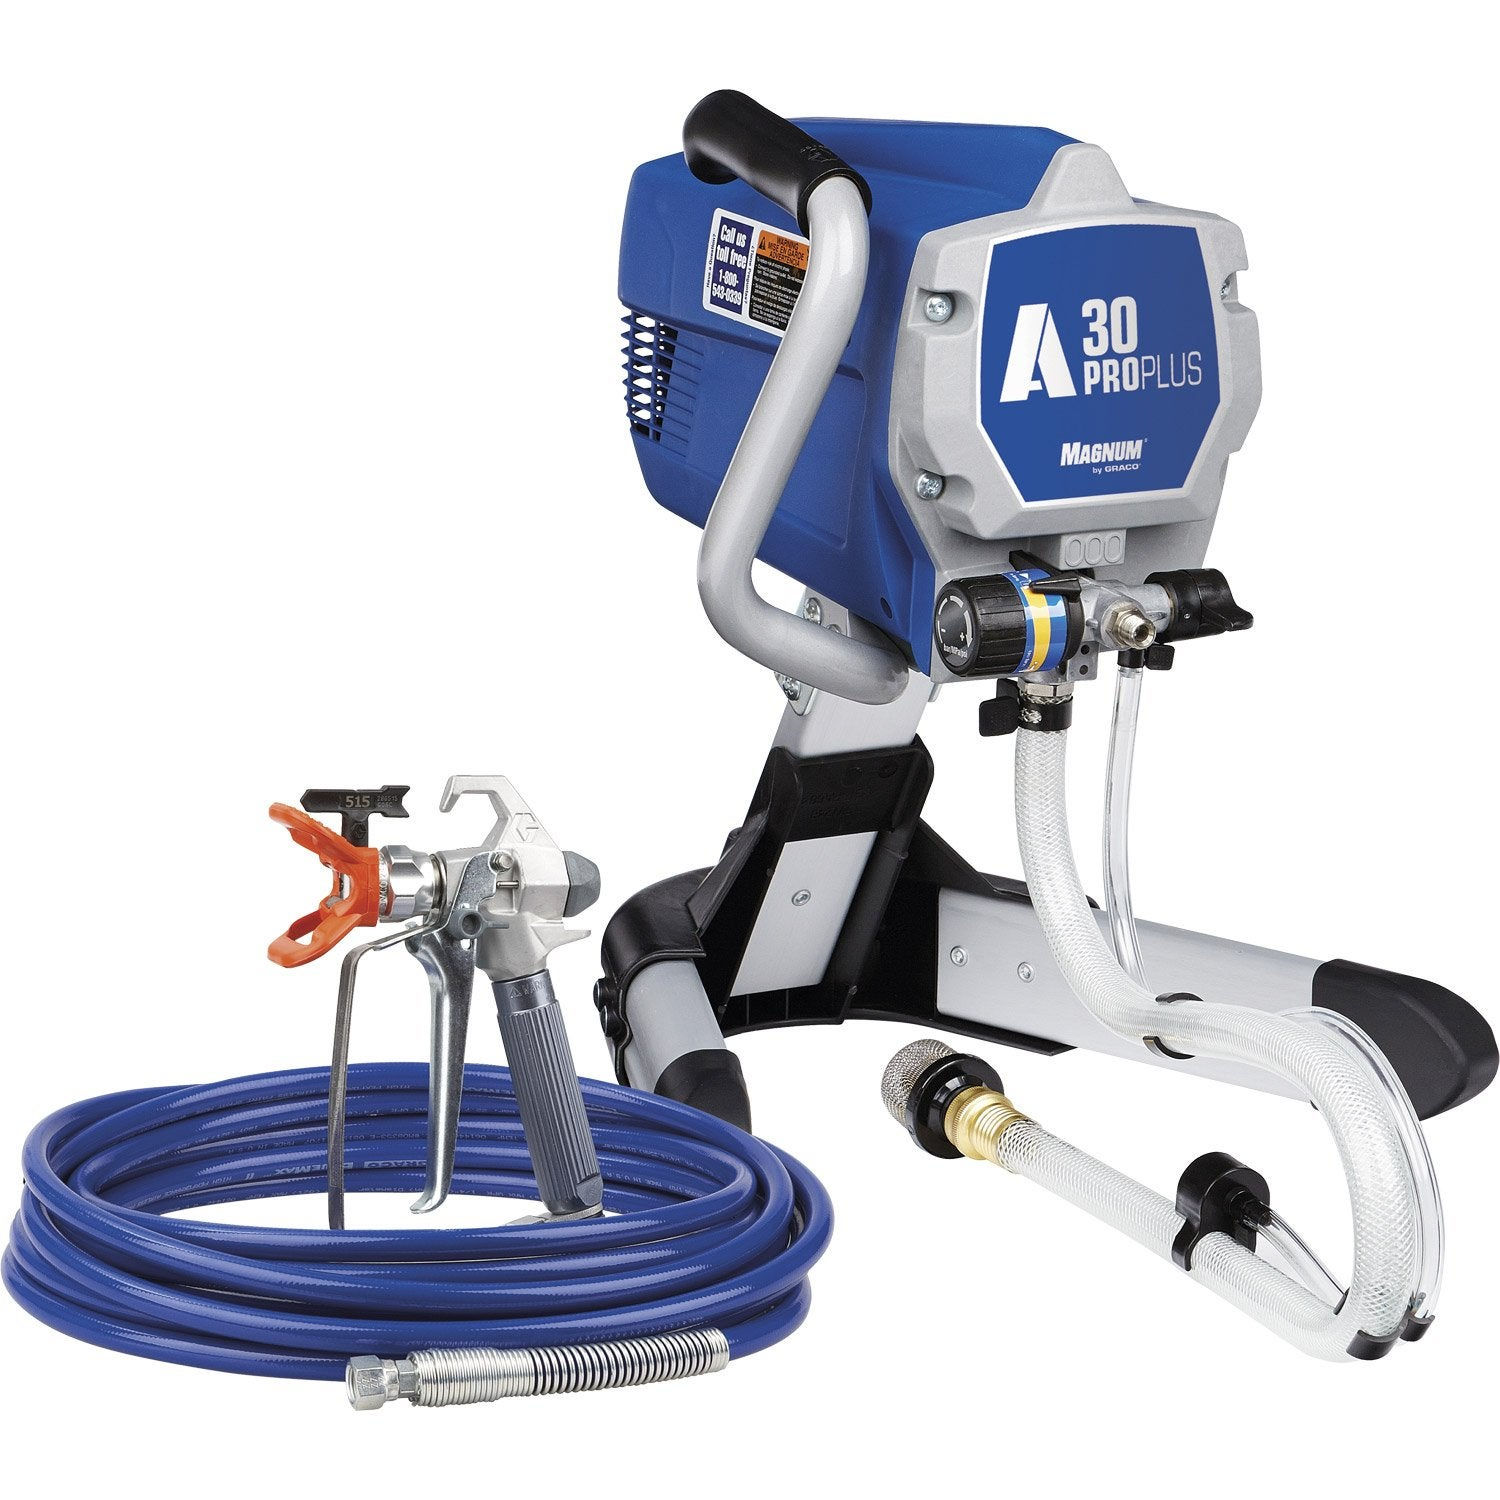 Graco a20 airless avis